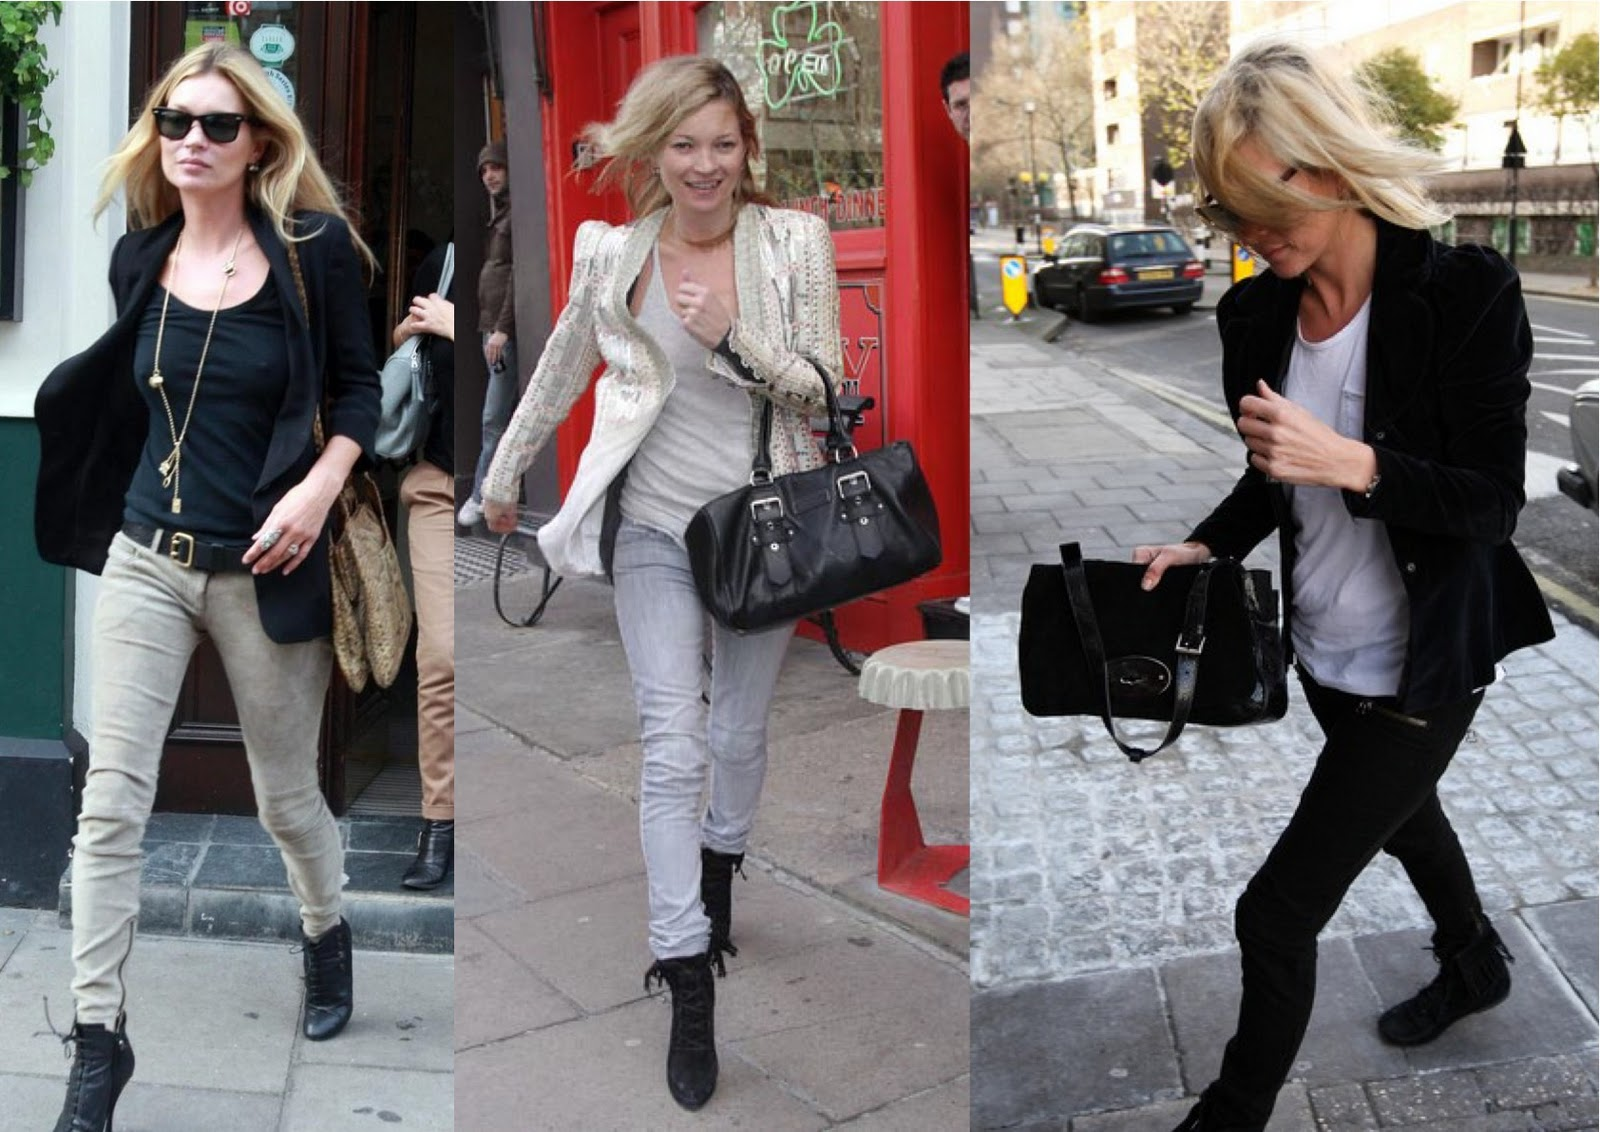 Street style kate moss posted by danielle levi at december 6 2010